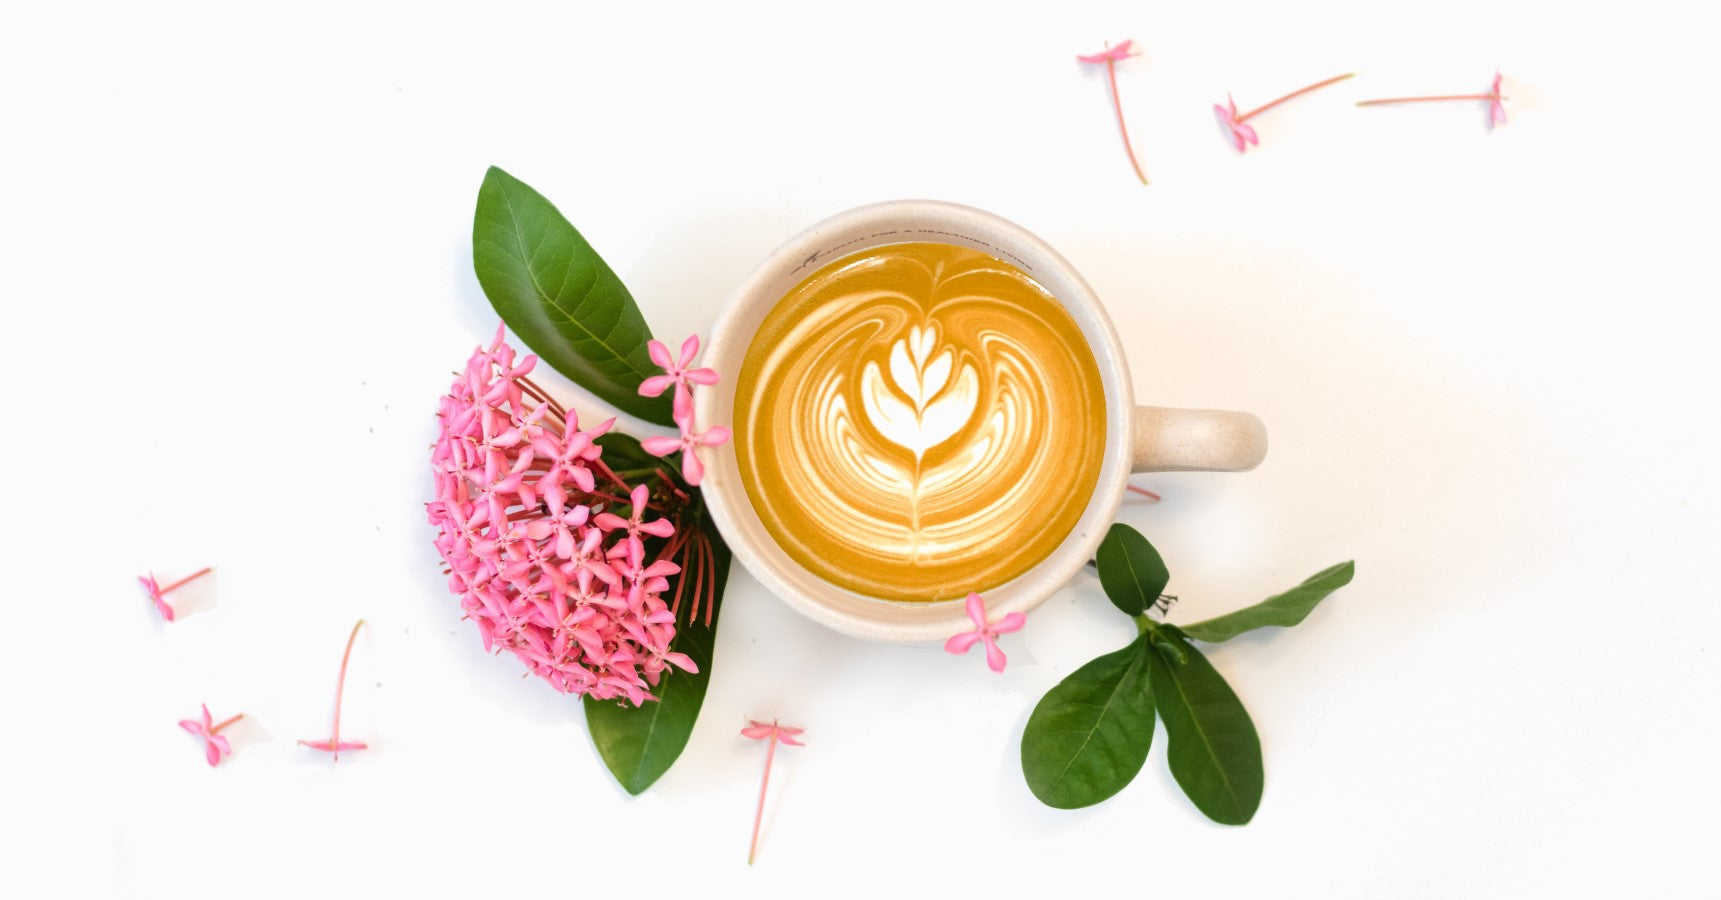 Cappuccino With Dainty Pink Flowers Floral Composition